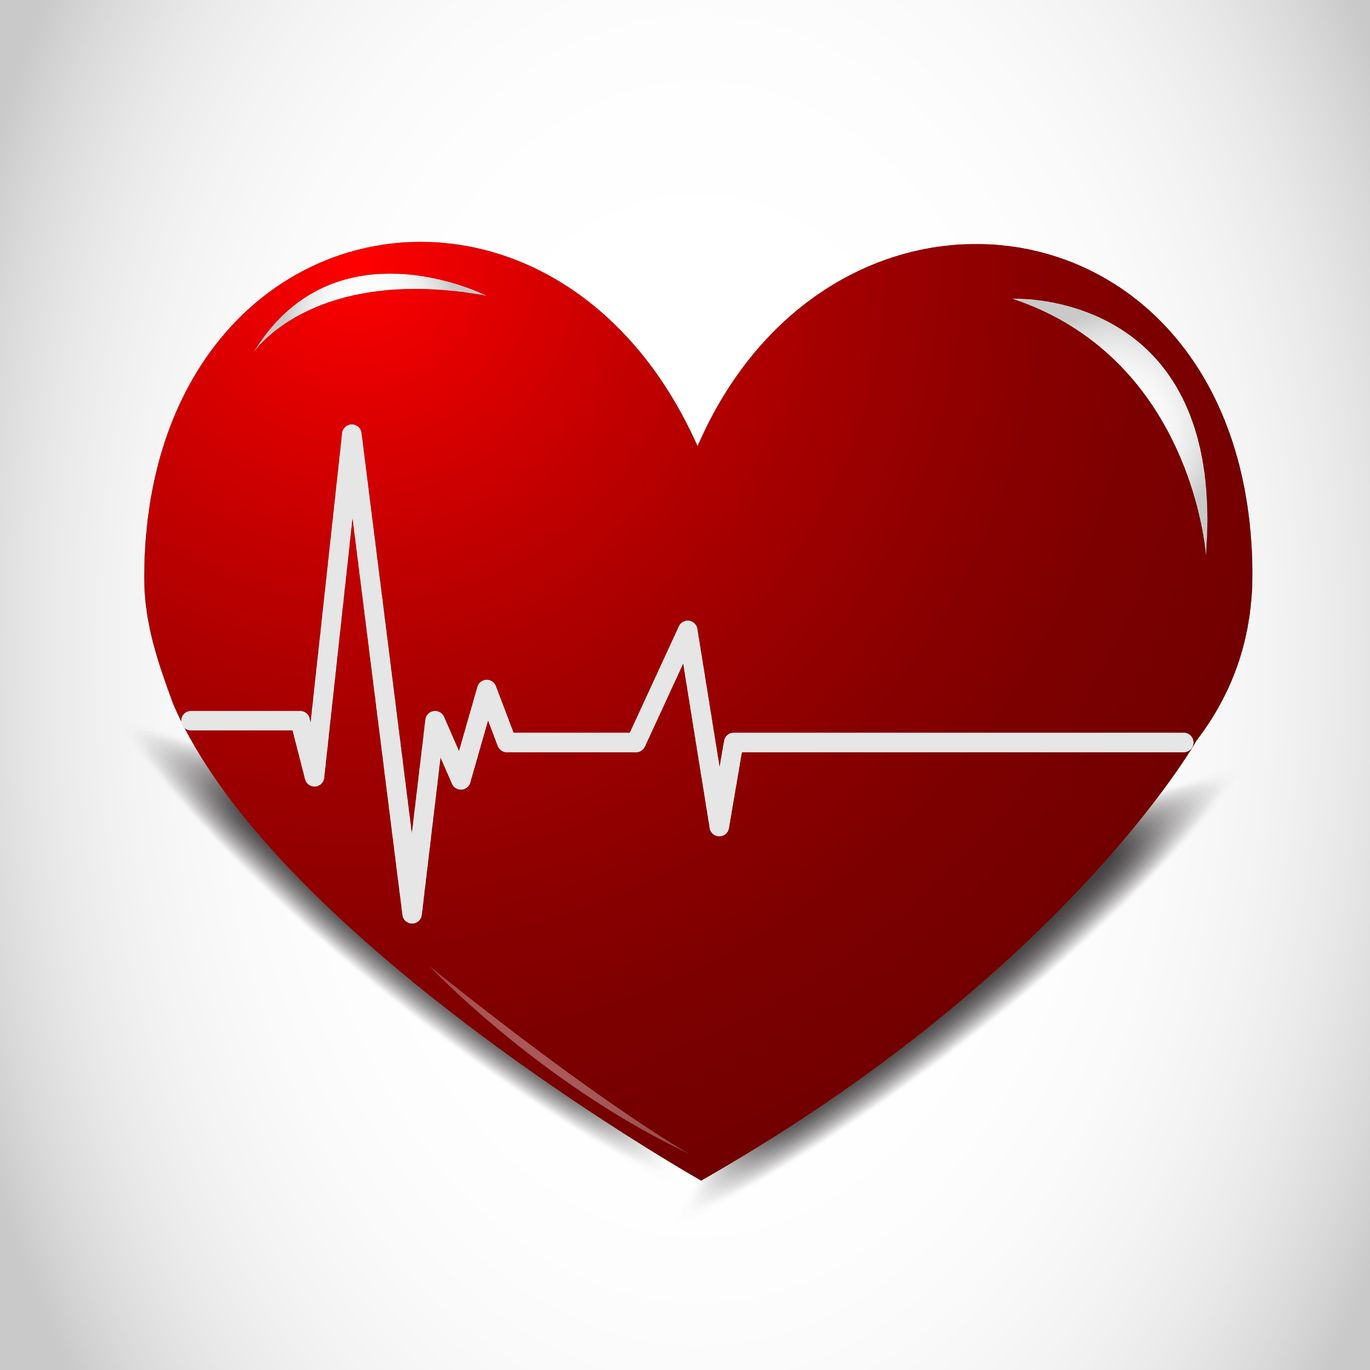 heartbeat clipart clipart best Beating Heart Animation for PowerPoint free animated beating heart clipart